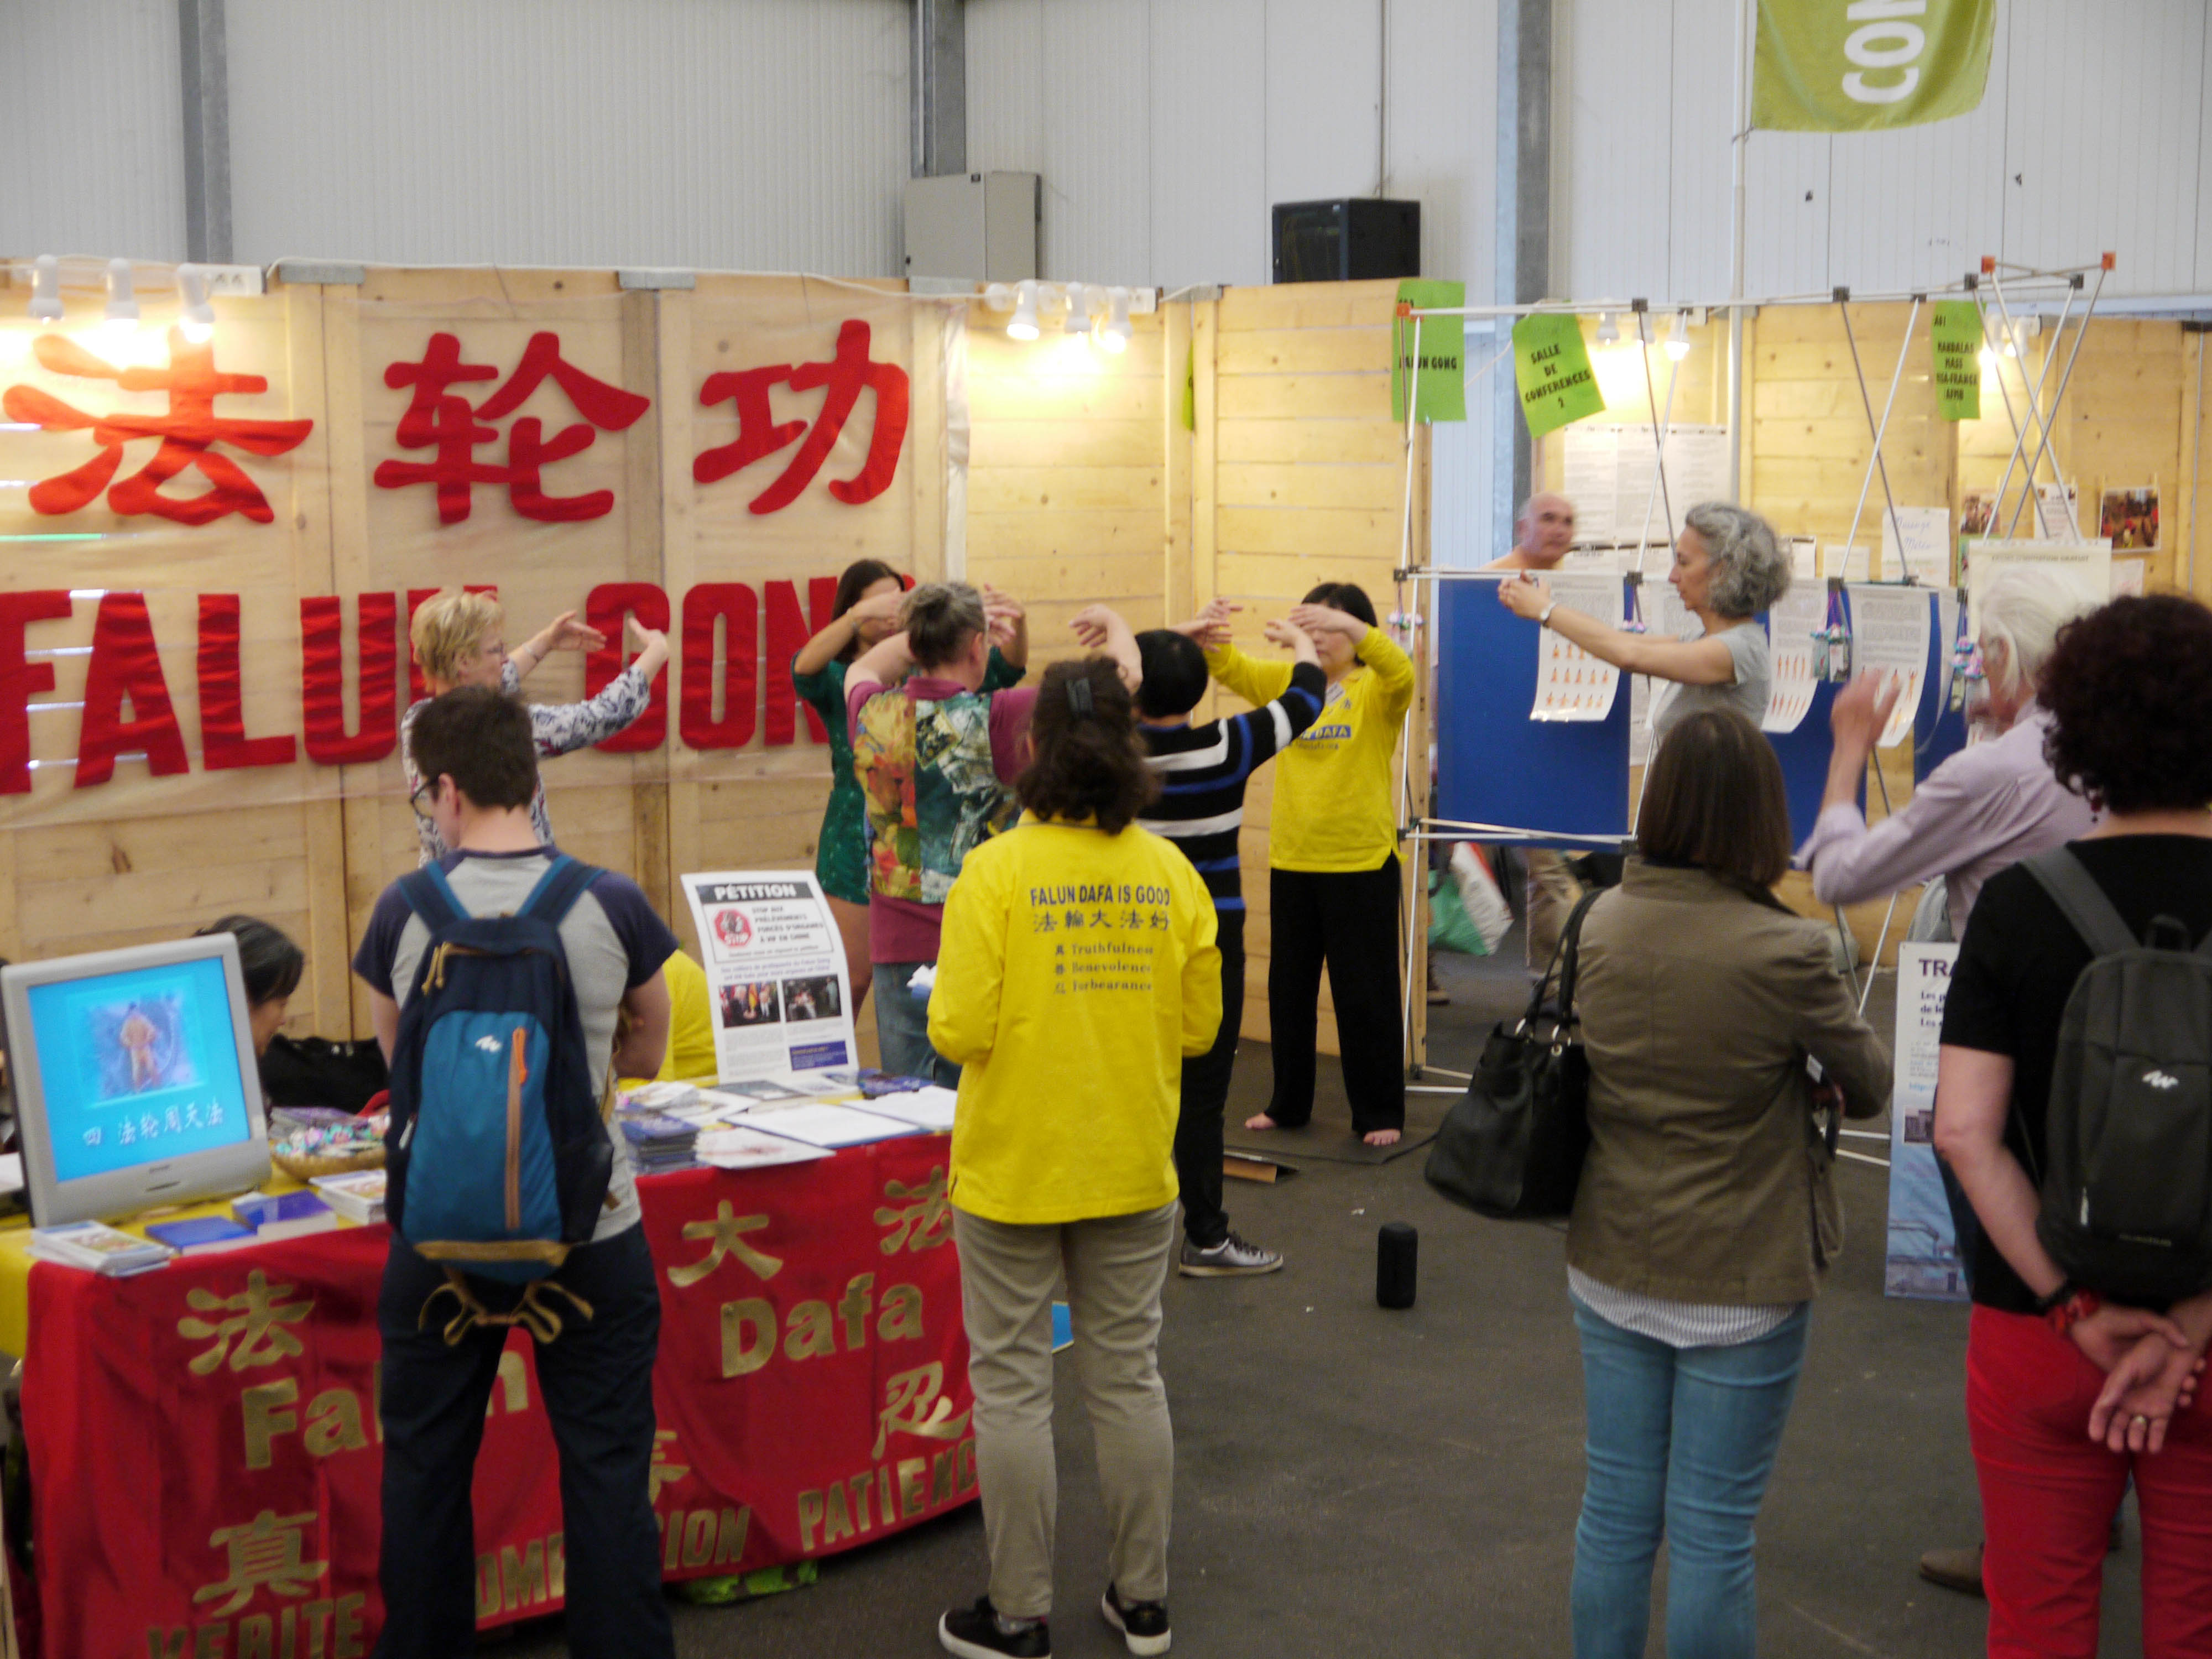 http://www.minghui.org/mh/article_images/2018-5-23-minghui-falun-gong-france-02.jpg